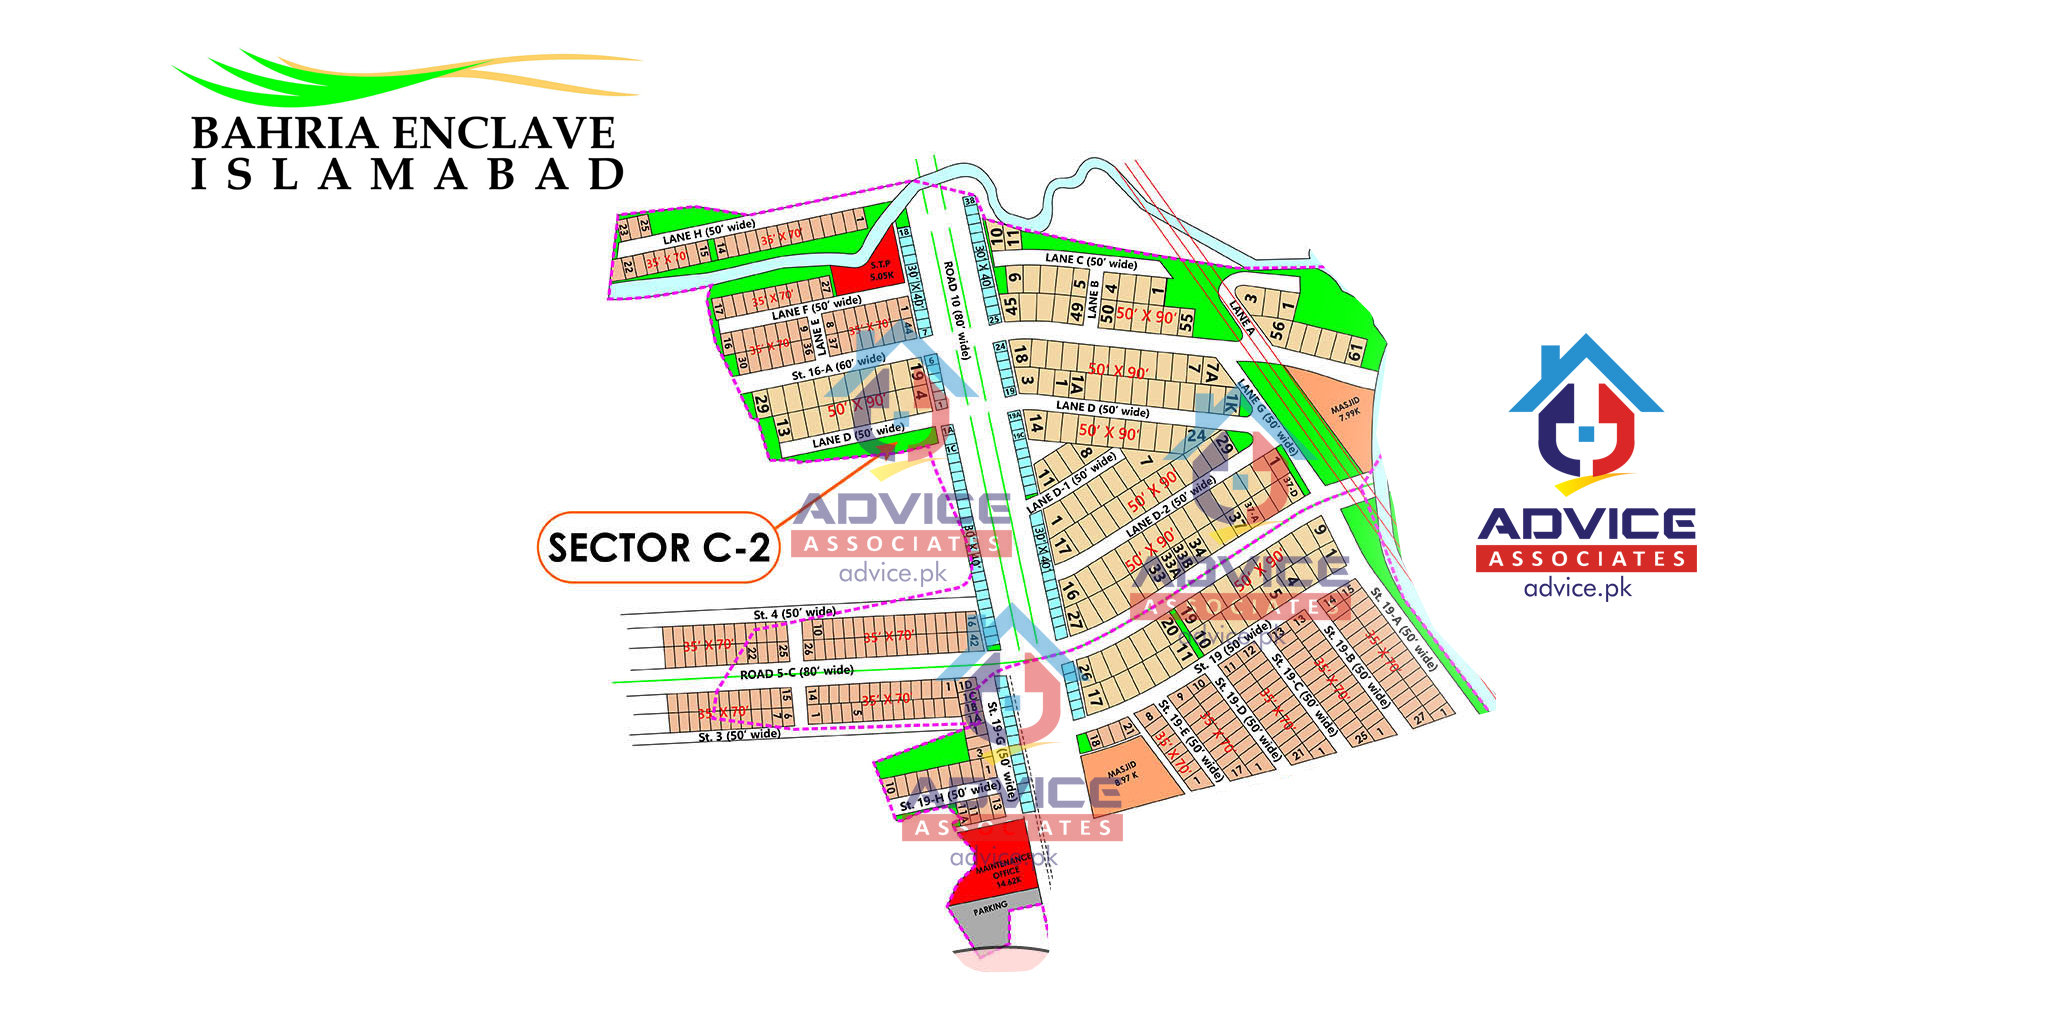 Bahria Enclave Sector C3 Map